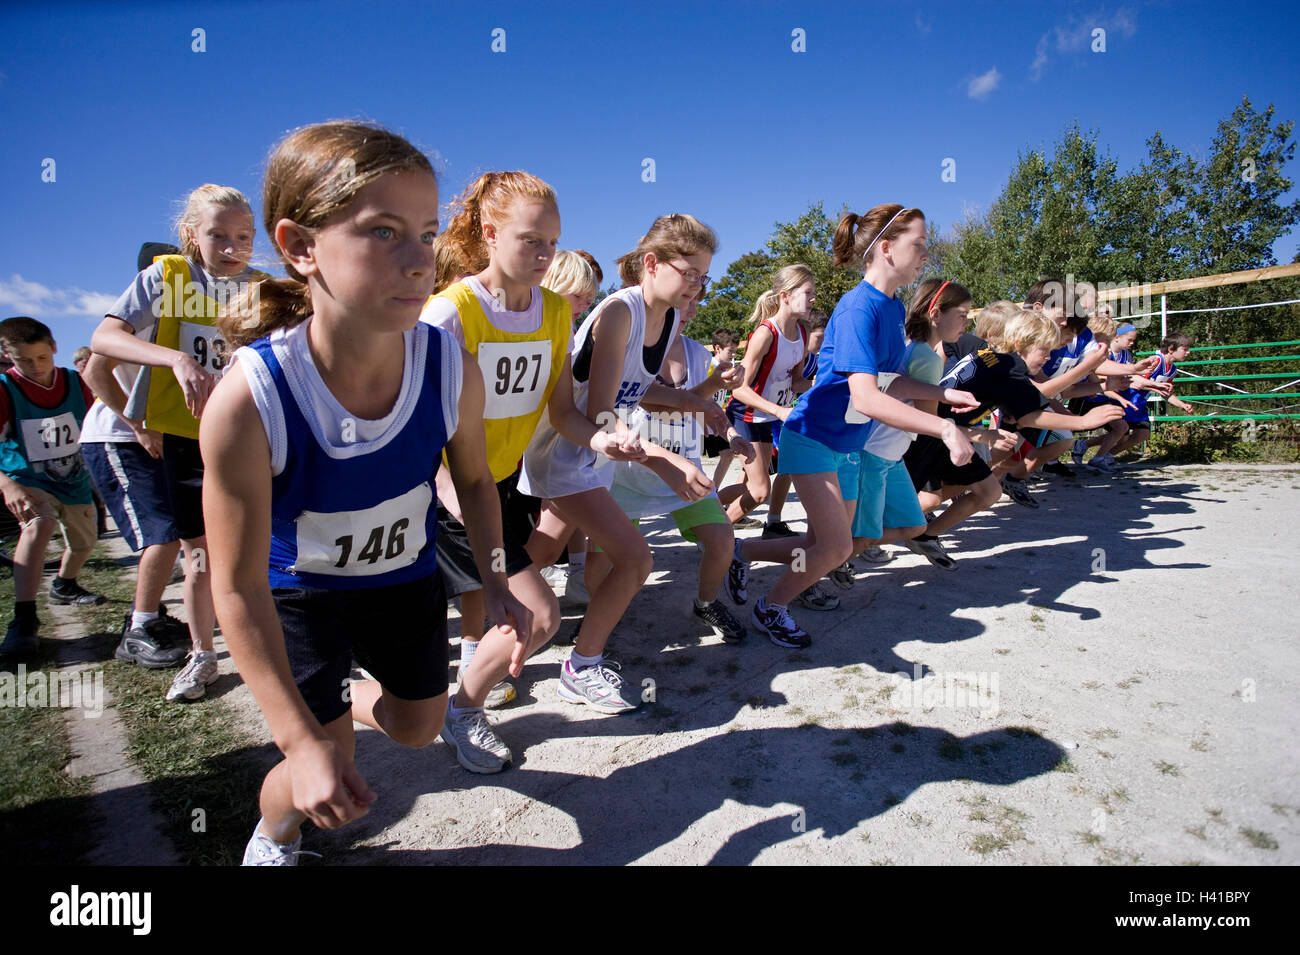 runners at starting line at track meet - Stock Image